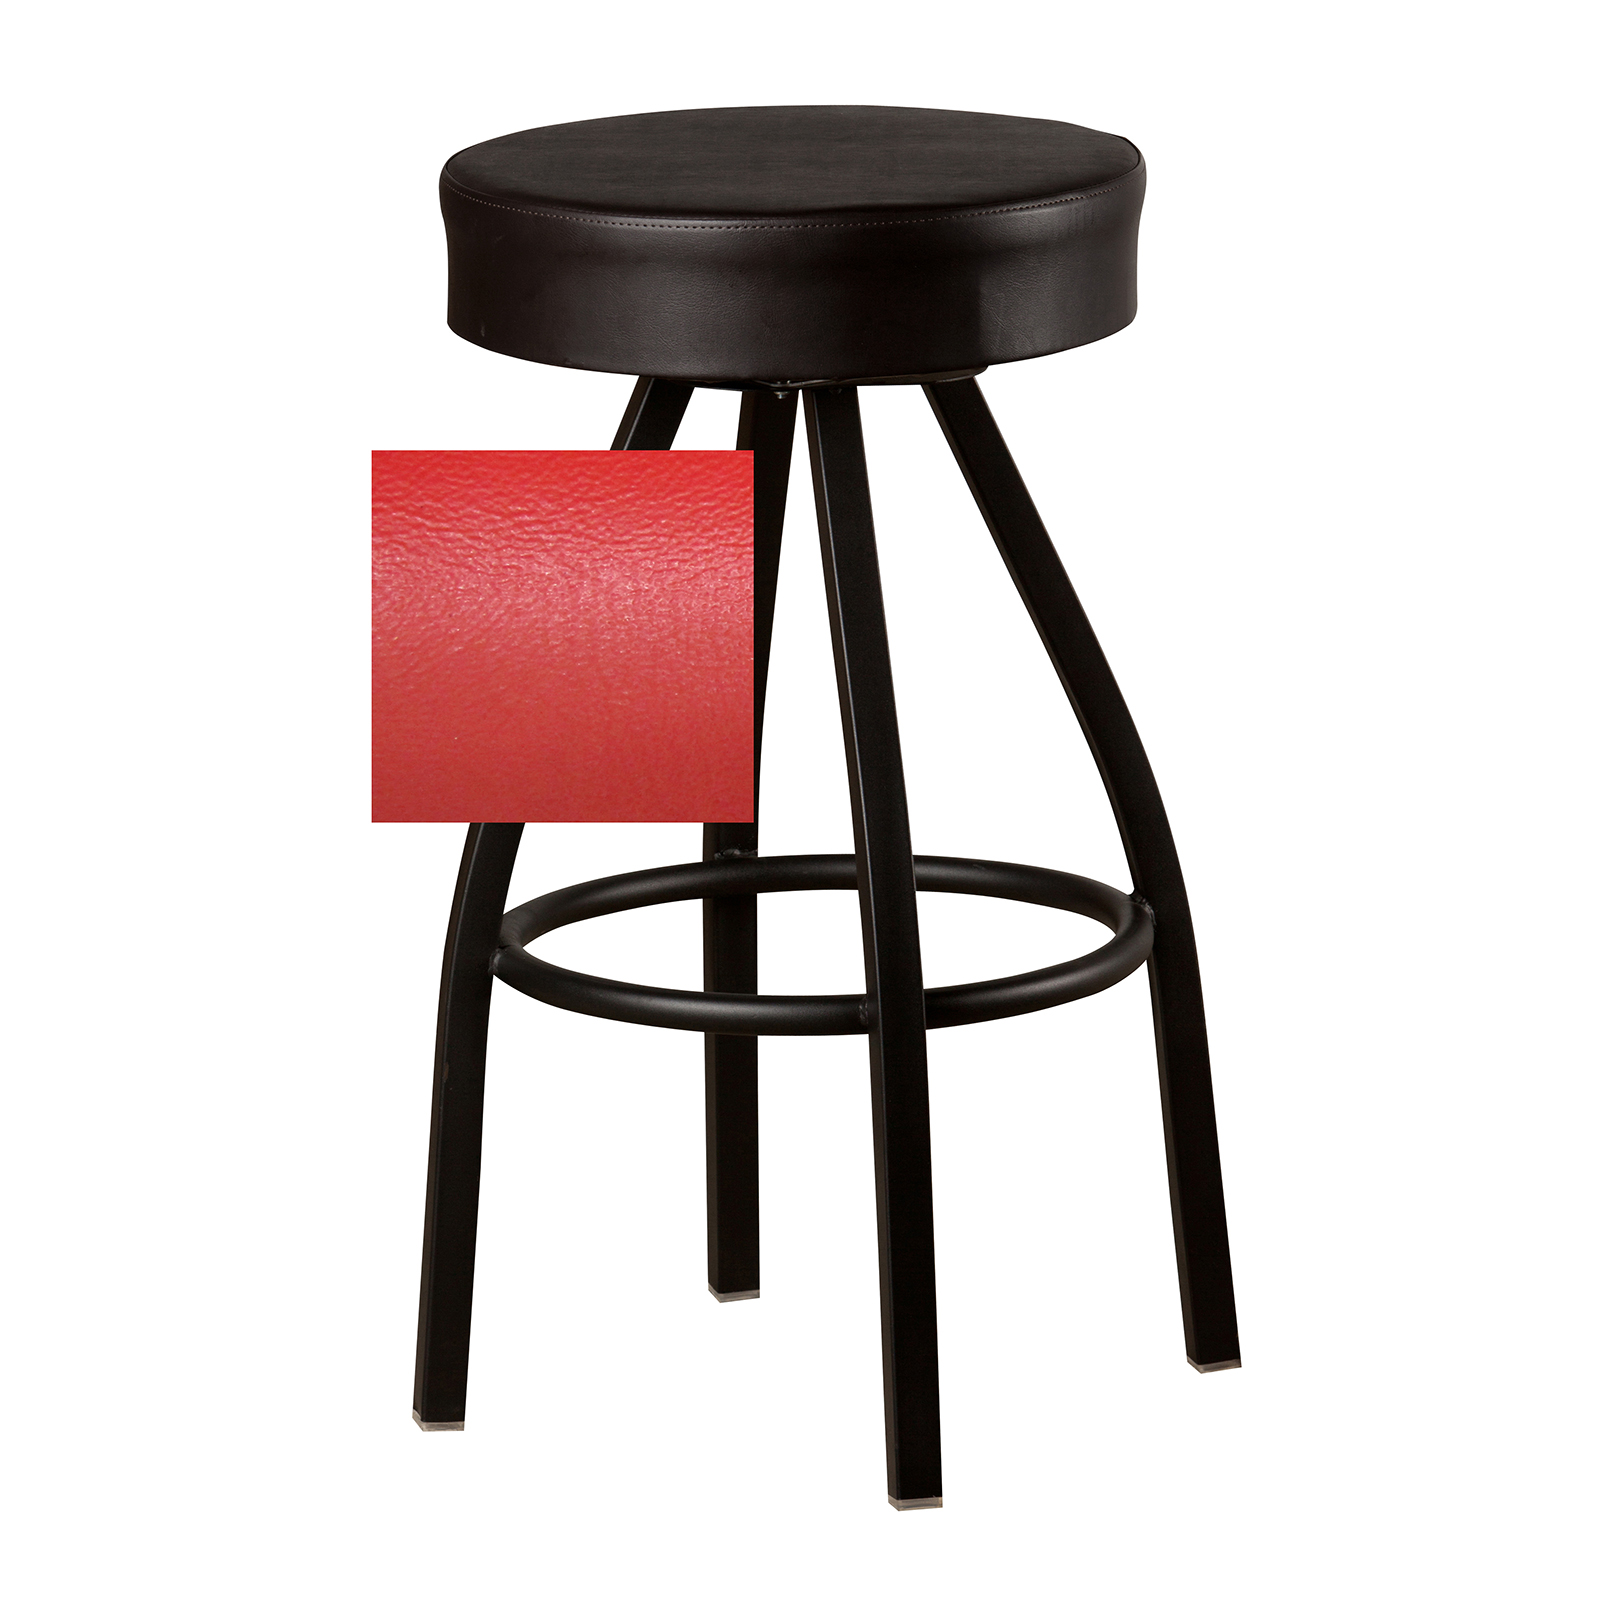 Oak Street SL3132-RED bar stool, swivel, indoor